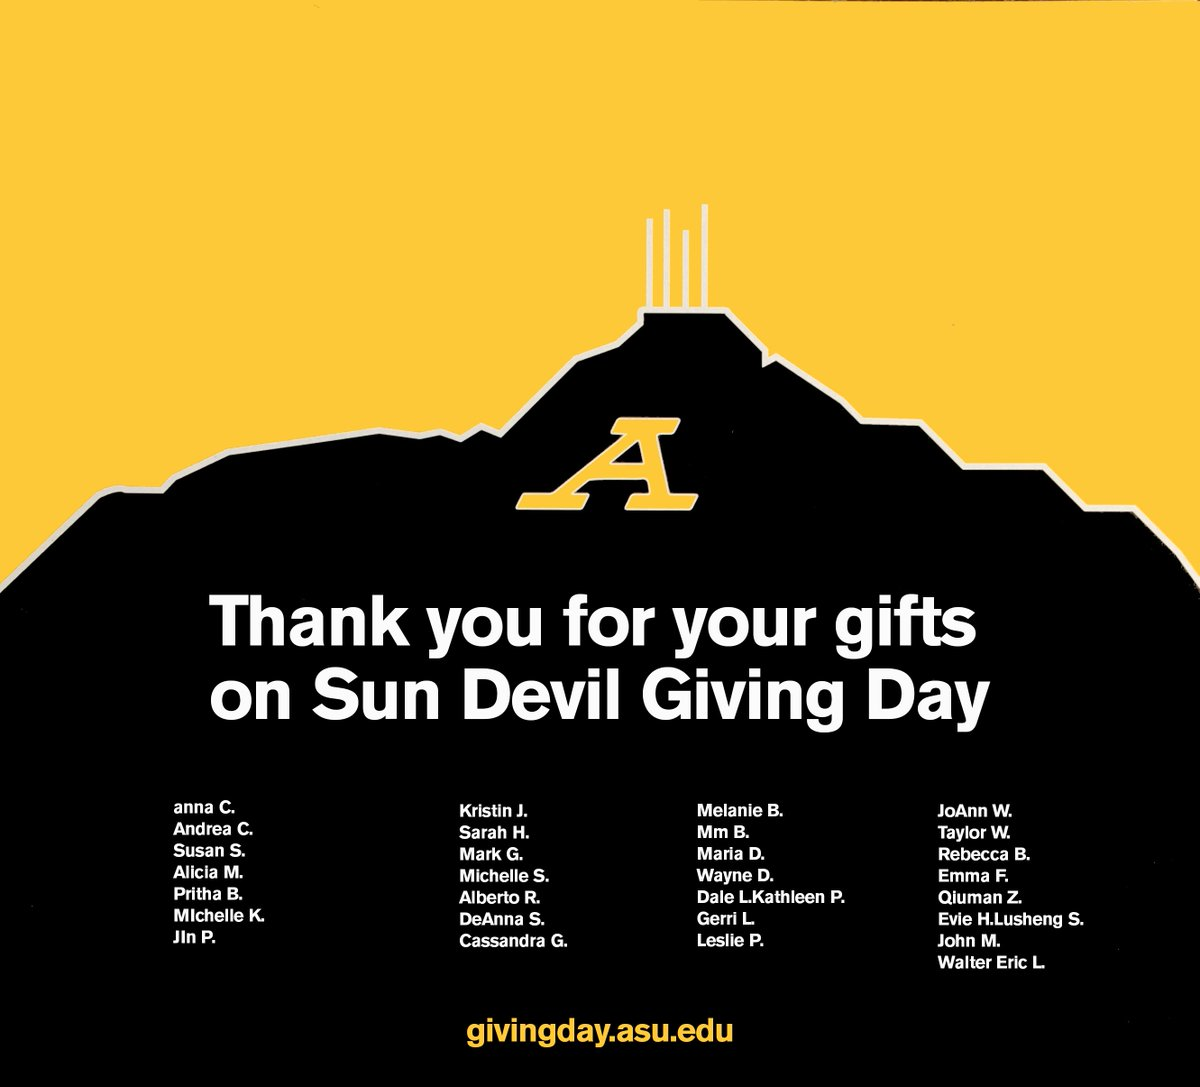 Arizona State University on Twitter: